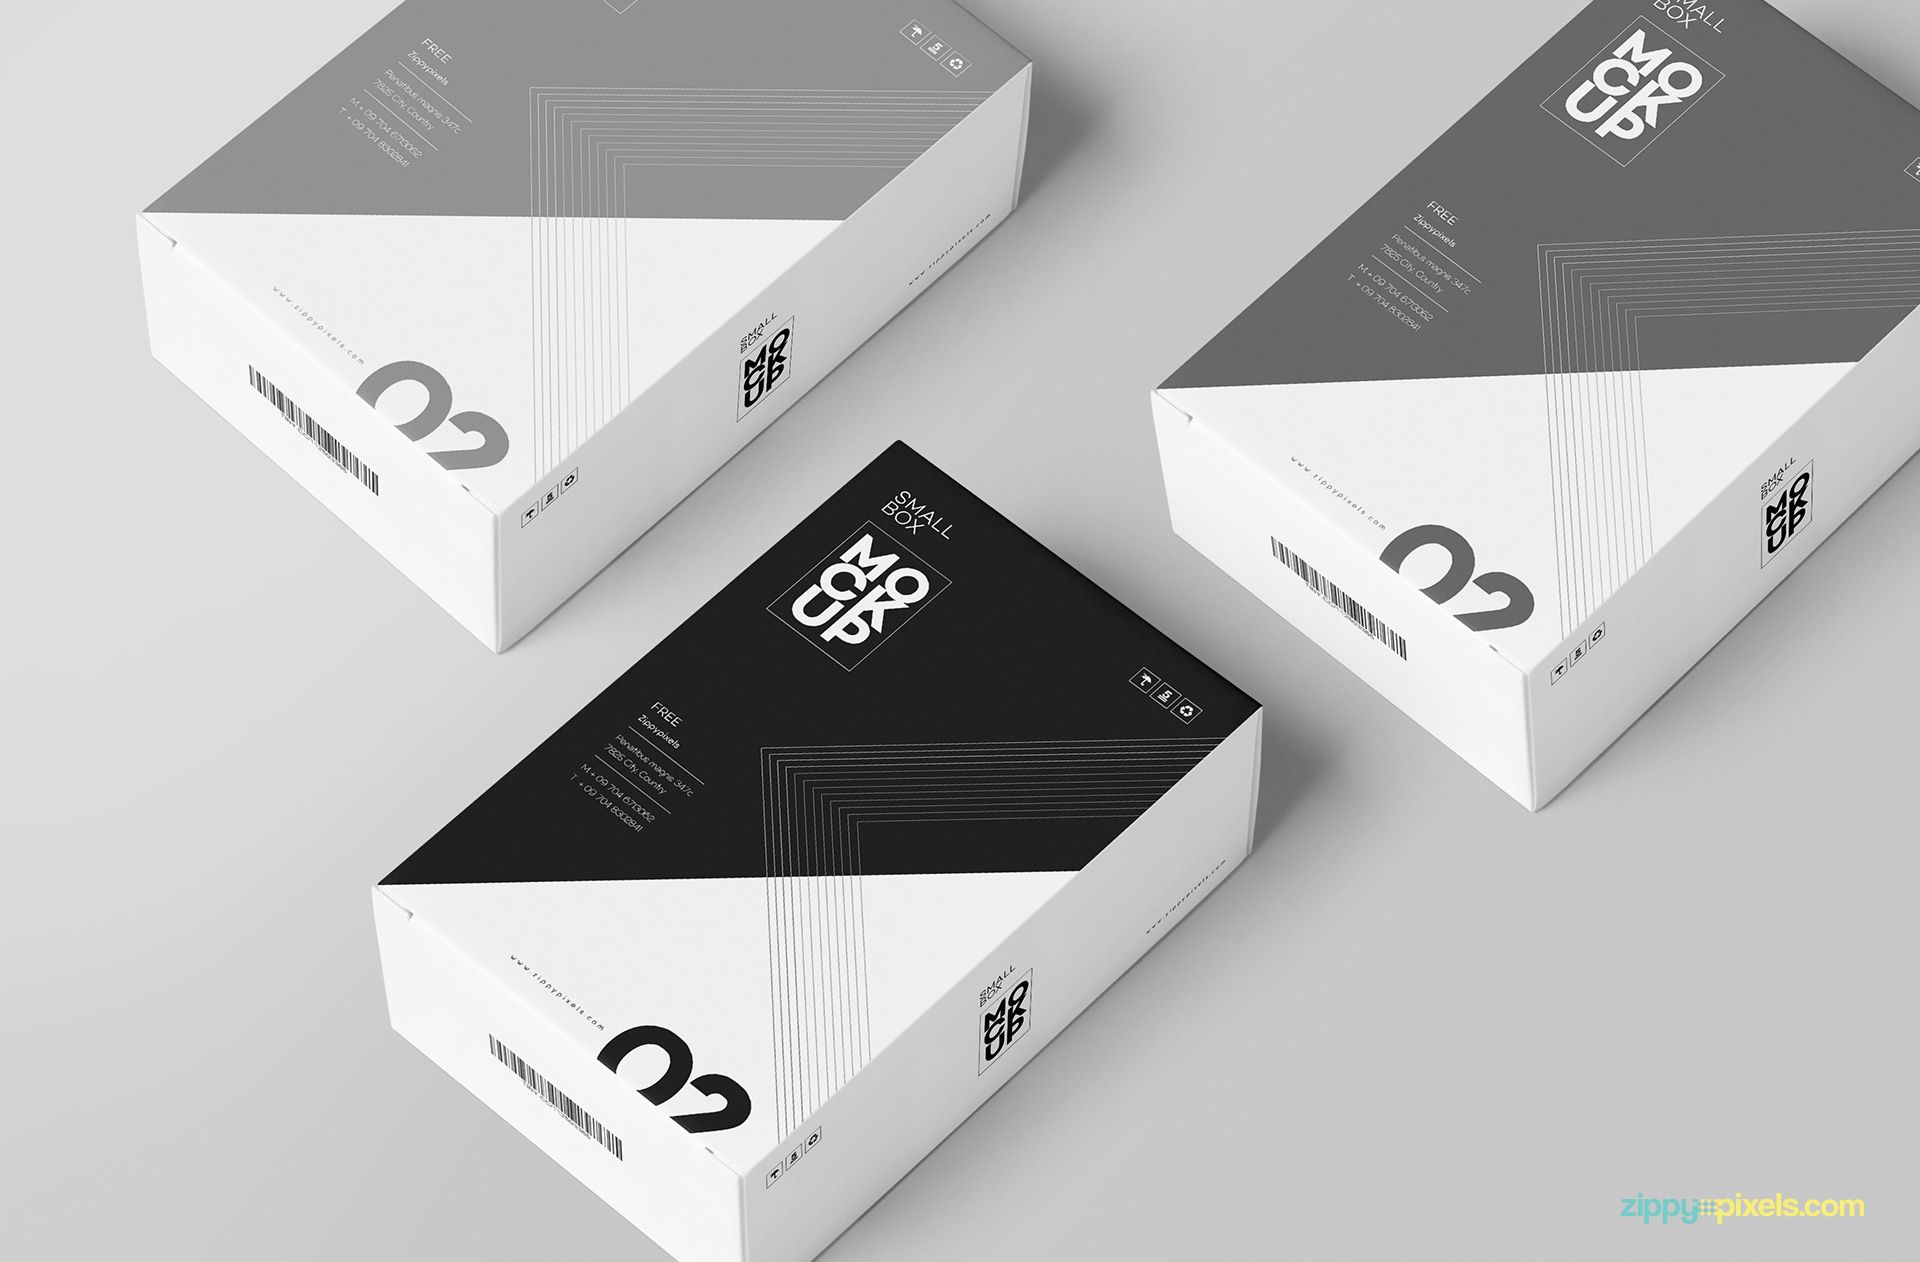 Download Free Customizable Card Box Mockup | Box mockup, Packaging ...